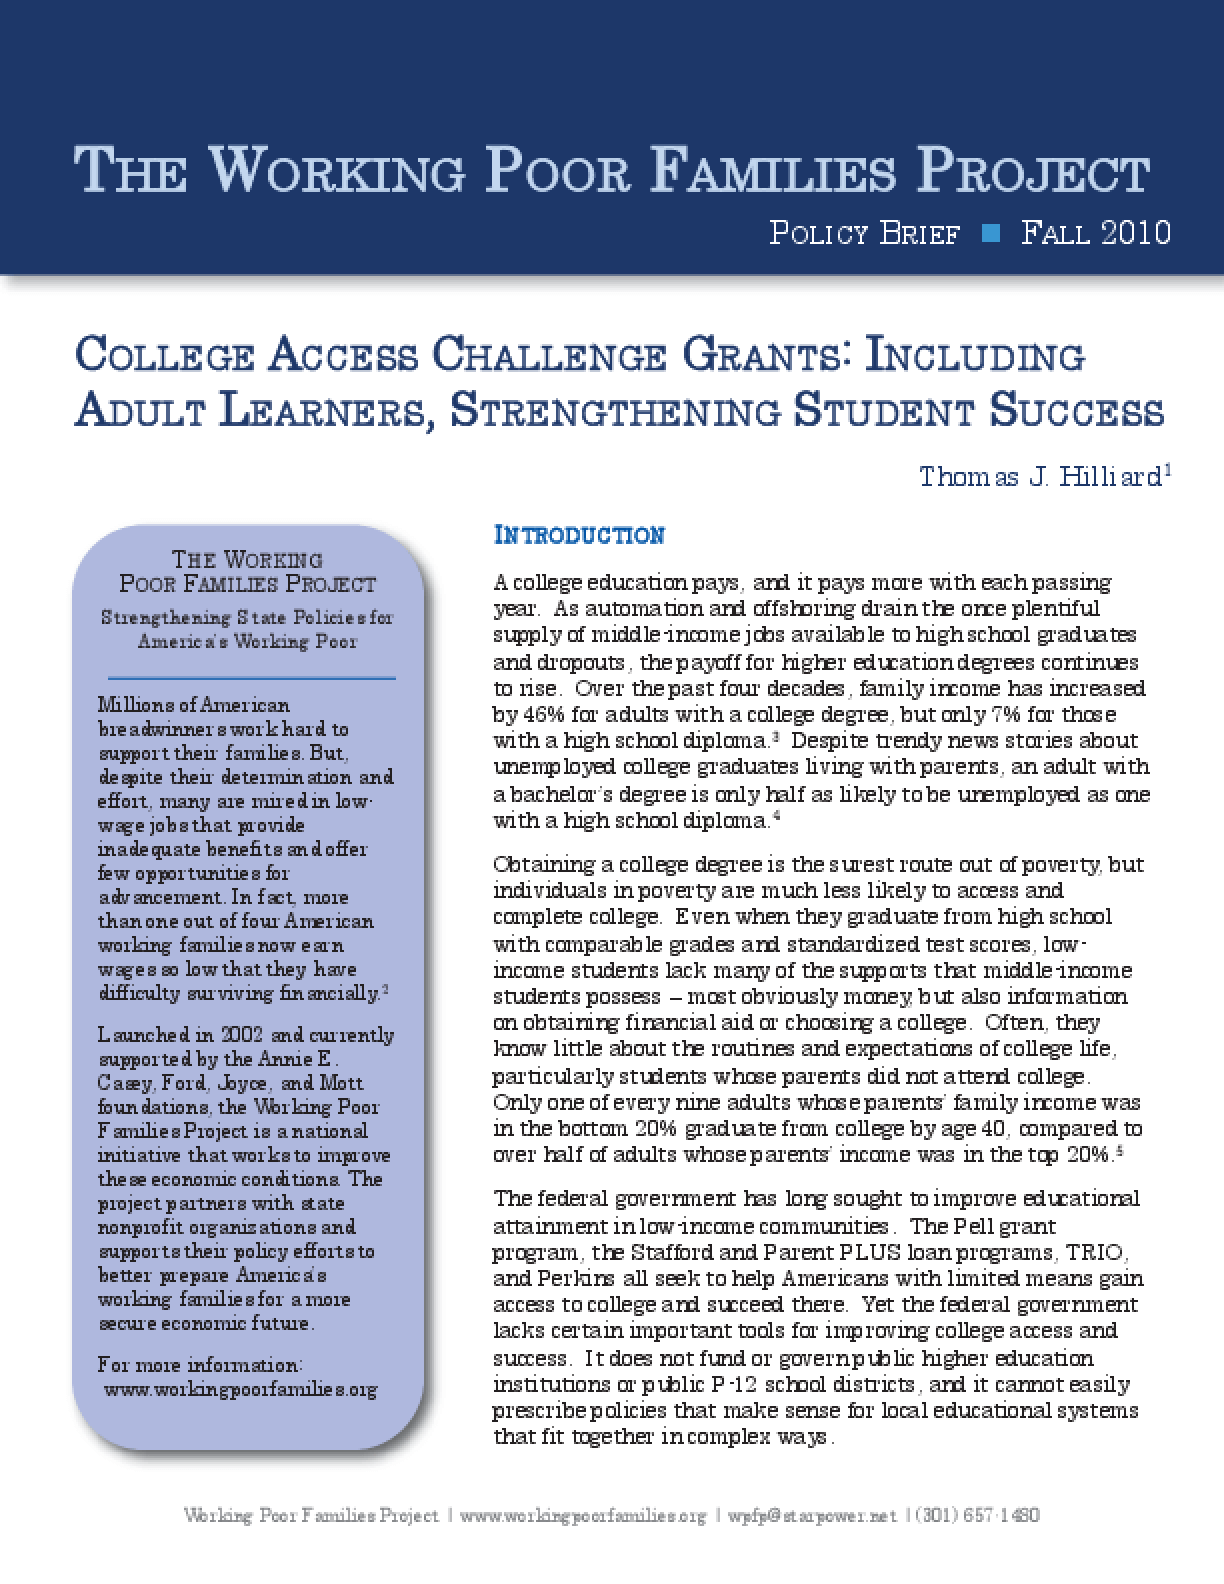 Innovations in College Access: Including Adult Learners, Strengthening Student Success